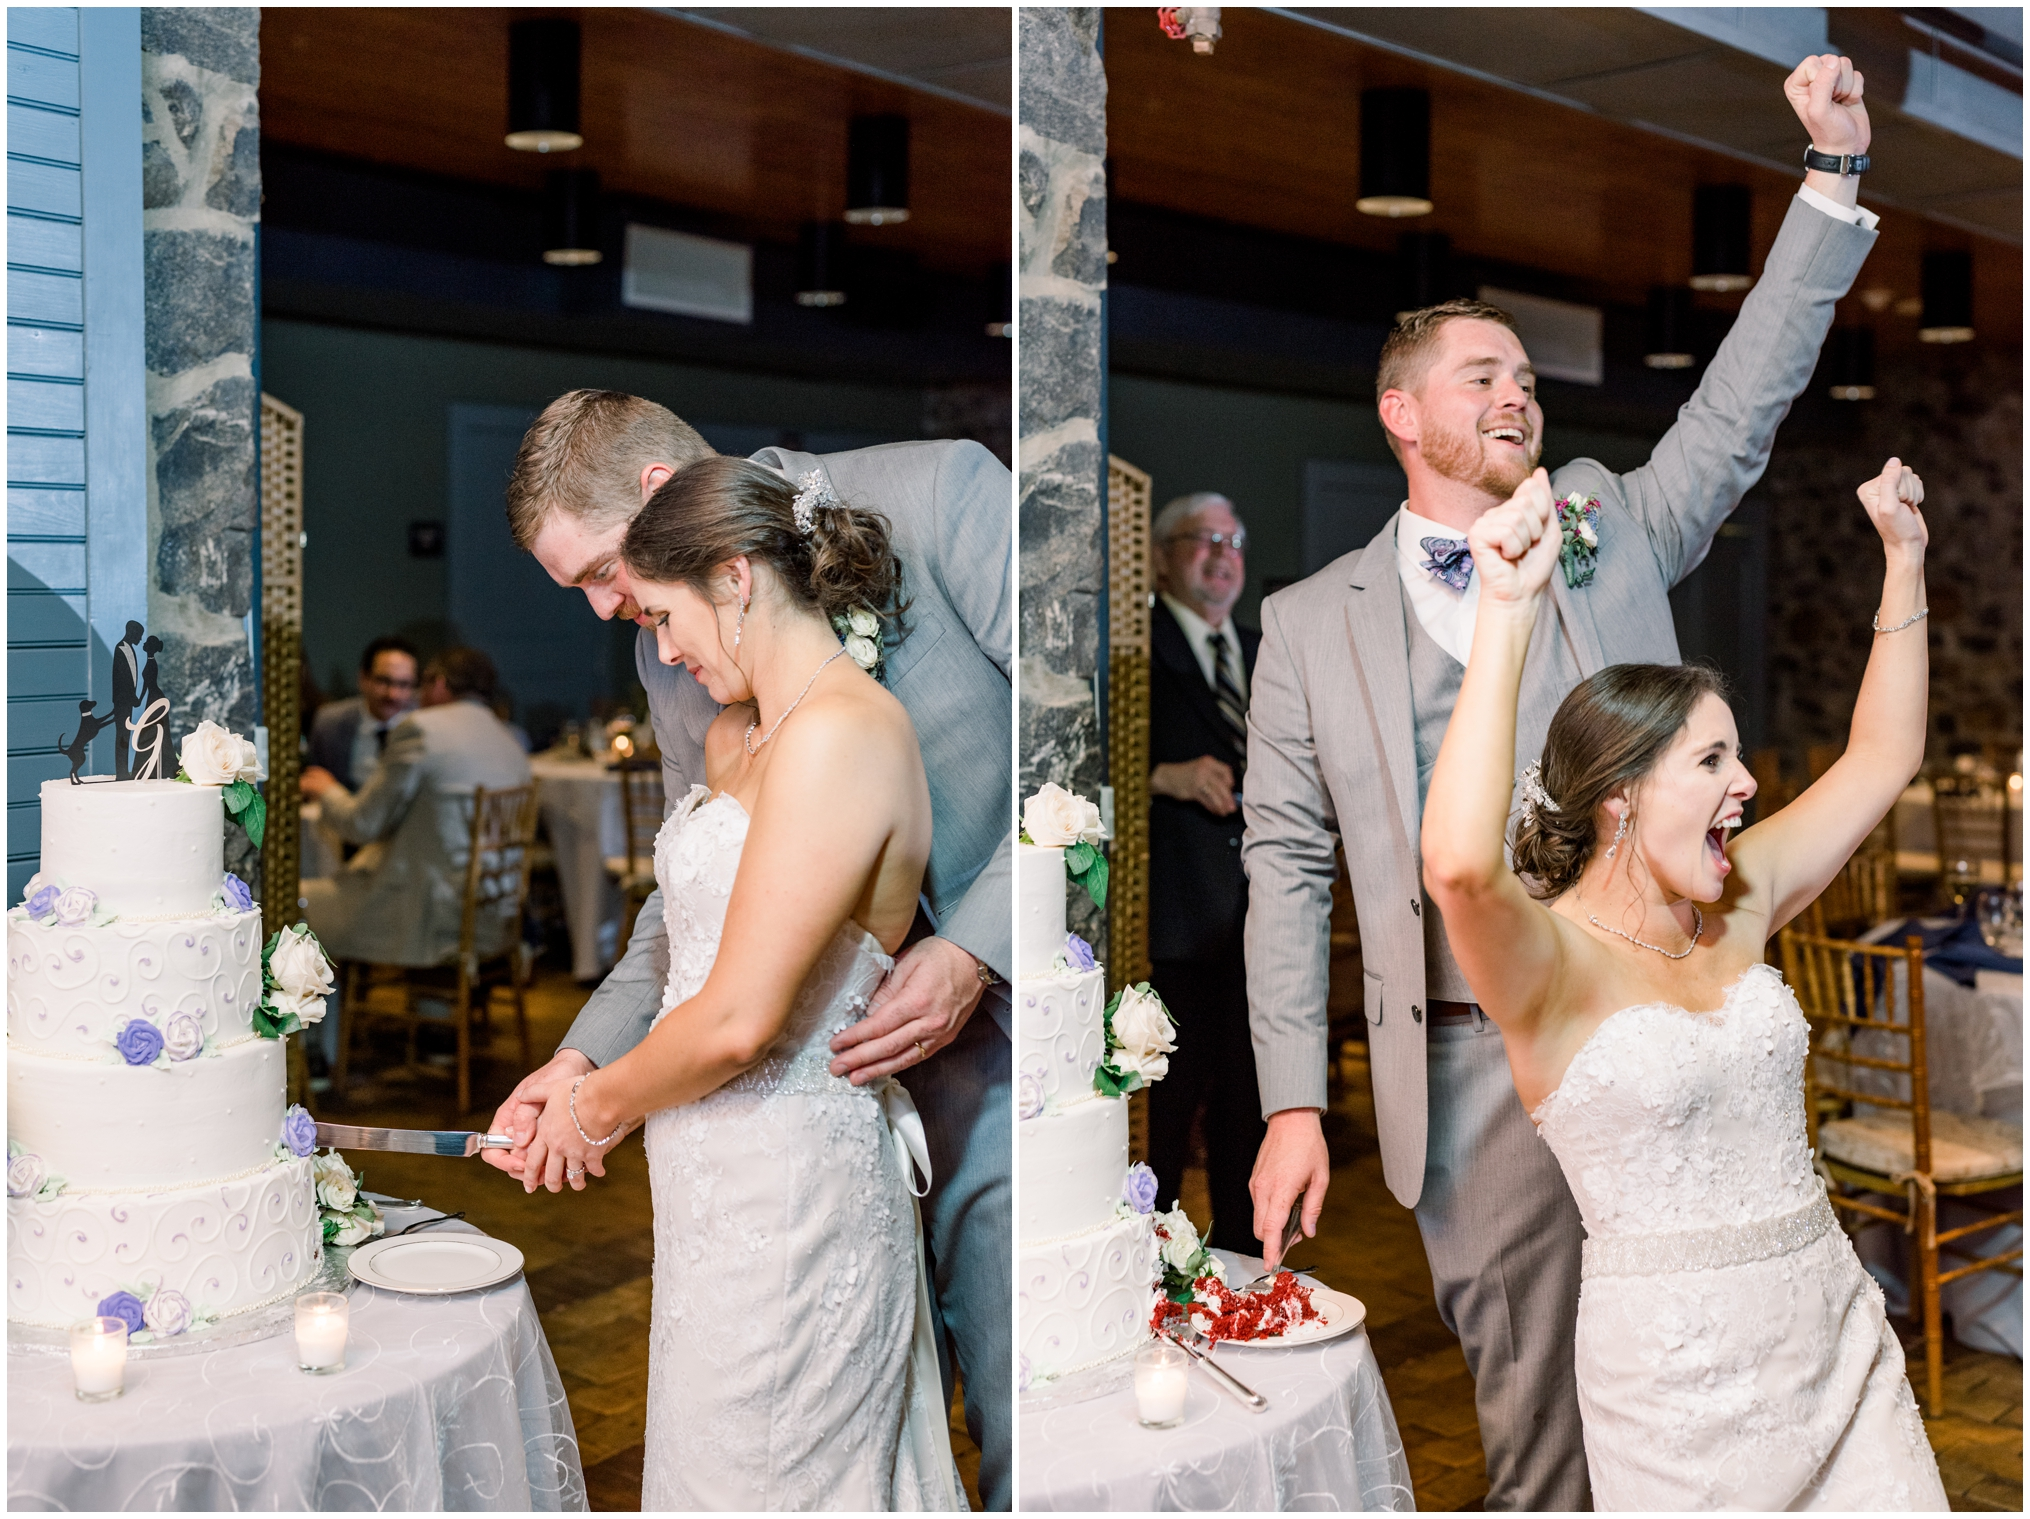 Krista Brackin Photography | April Wedding at The Carriage House at Rockwood Park_0117.jpg